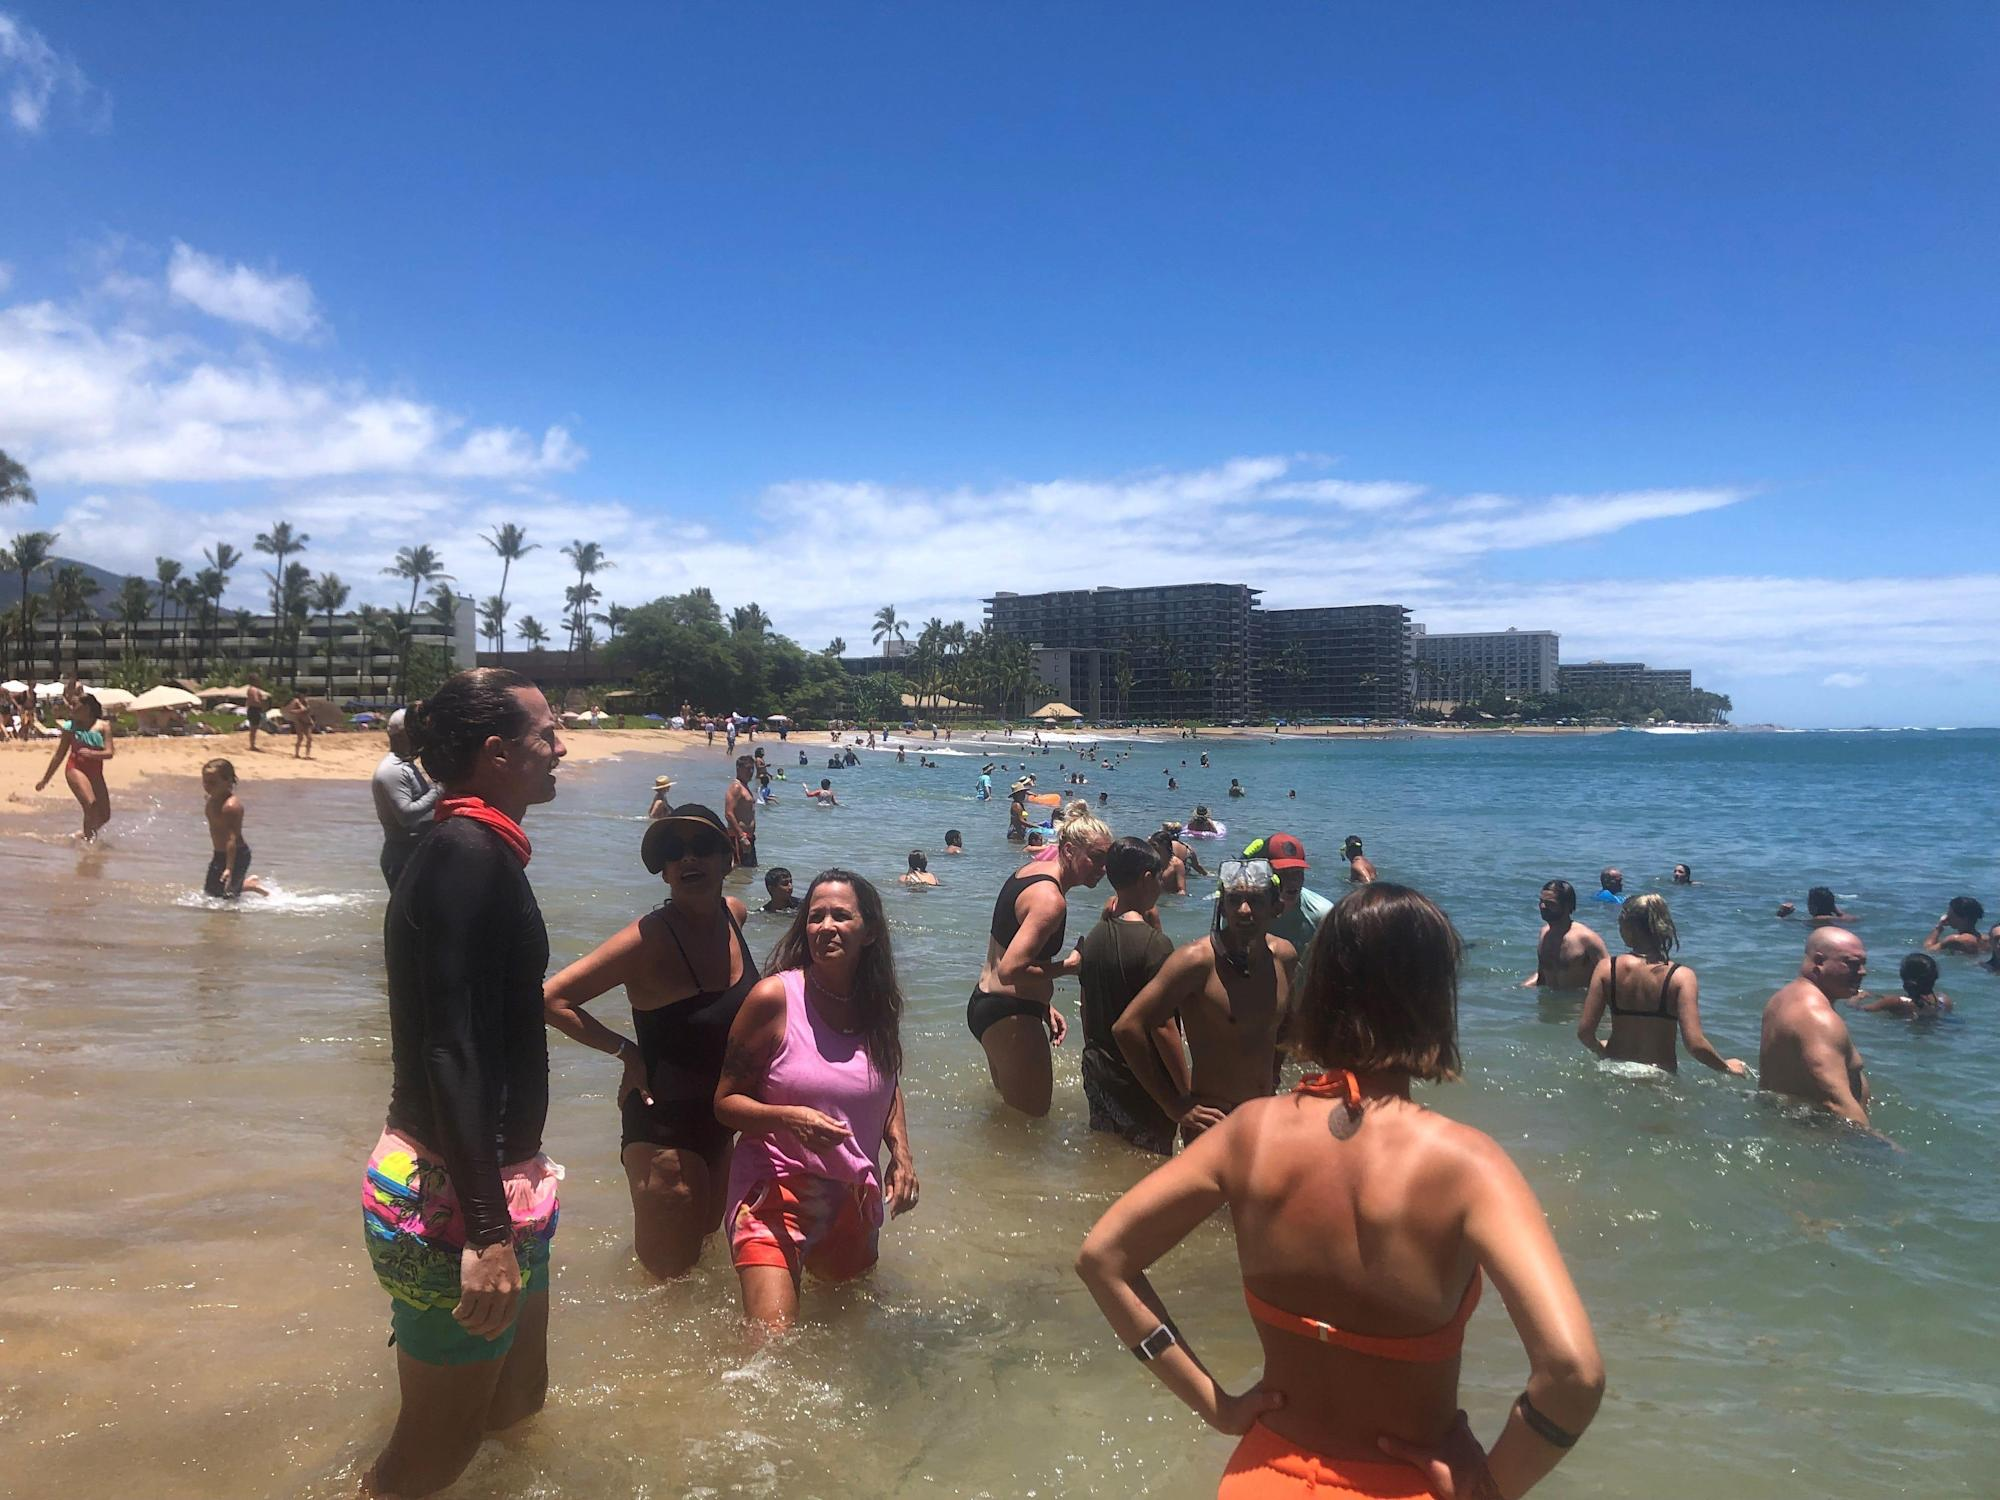 'We get cussed at every day': Maui tourist surge raises tensions, renews calls for visitor limits, new fees